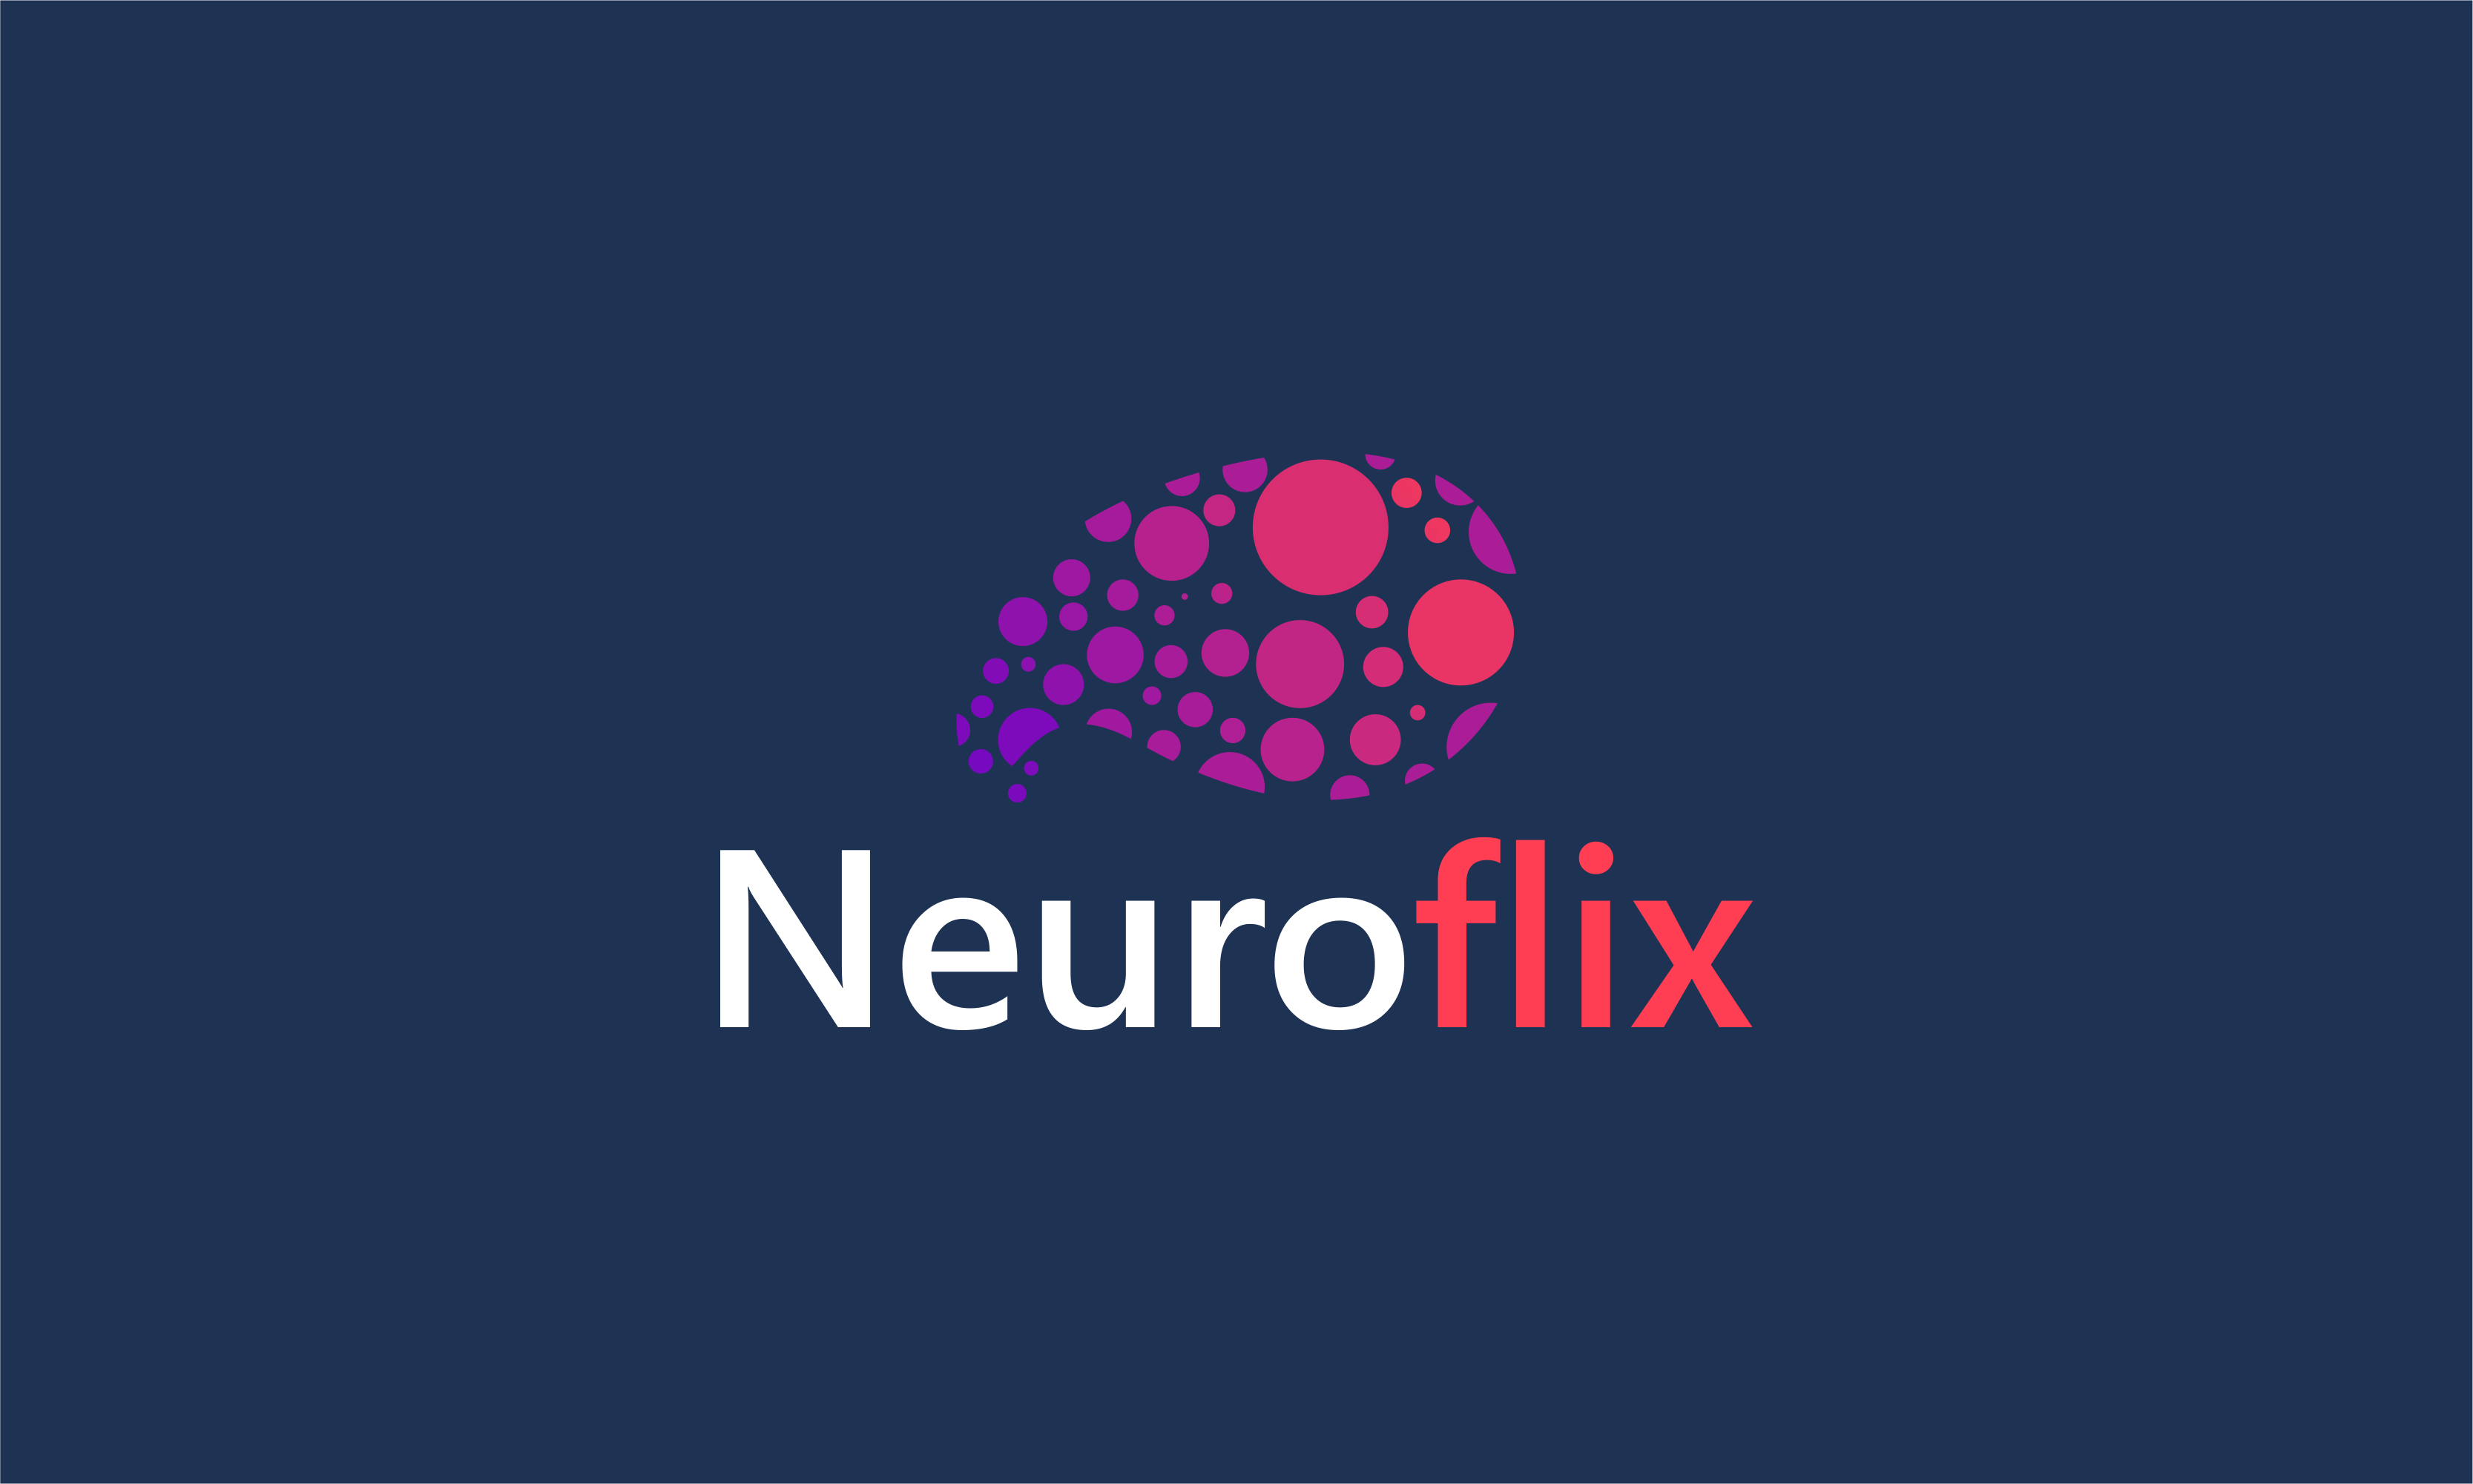 Neuroflix